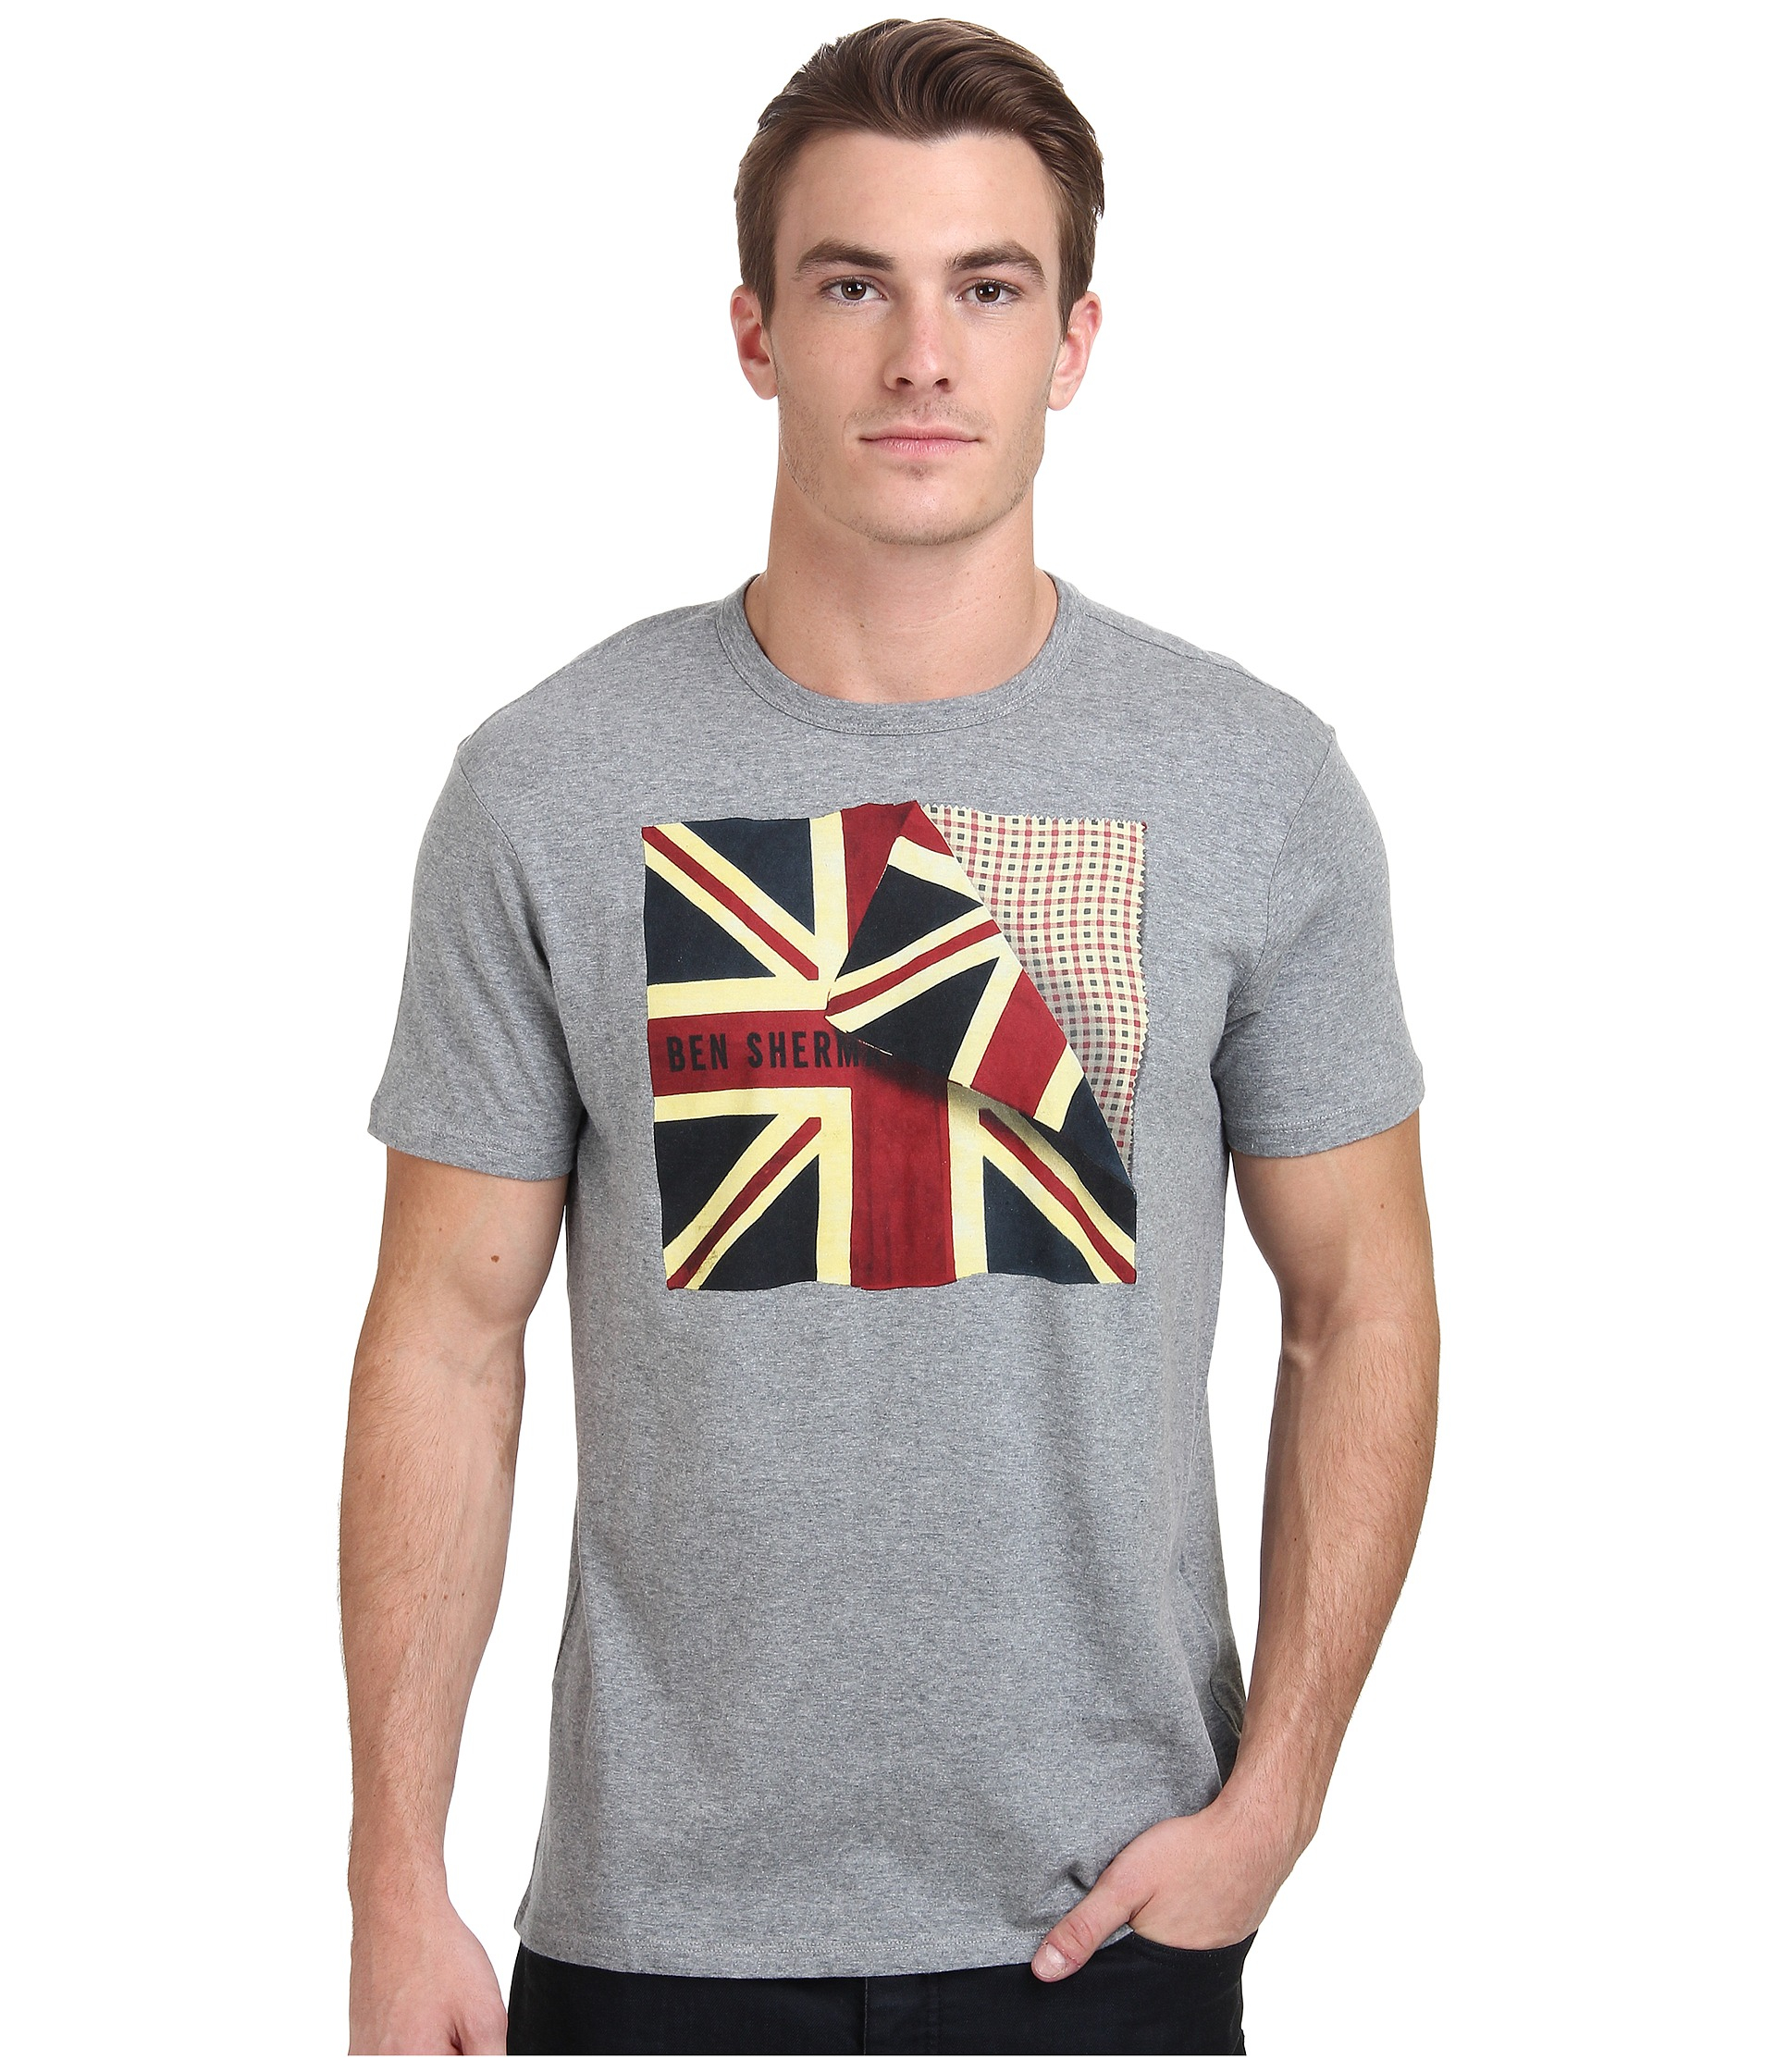 Ben sherman short sleeve folded flag tee shirt mb11468 in for Silver jeans t shirts